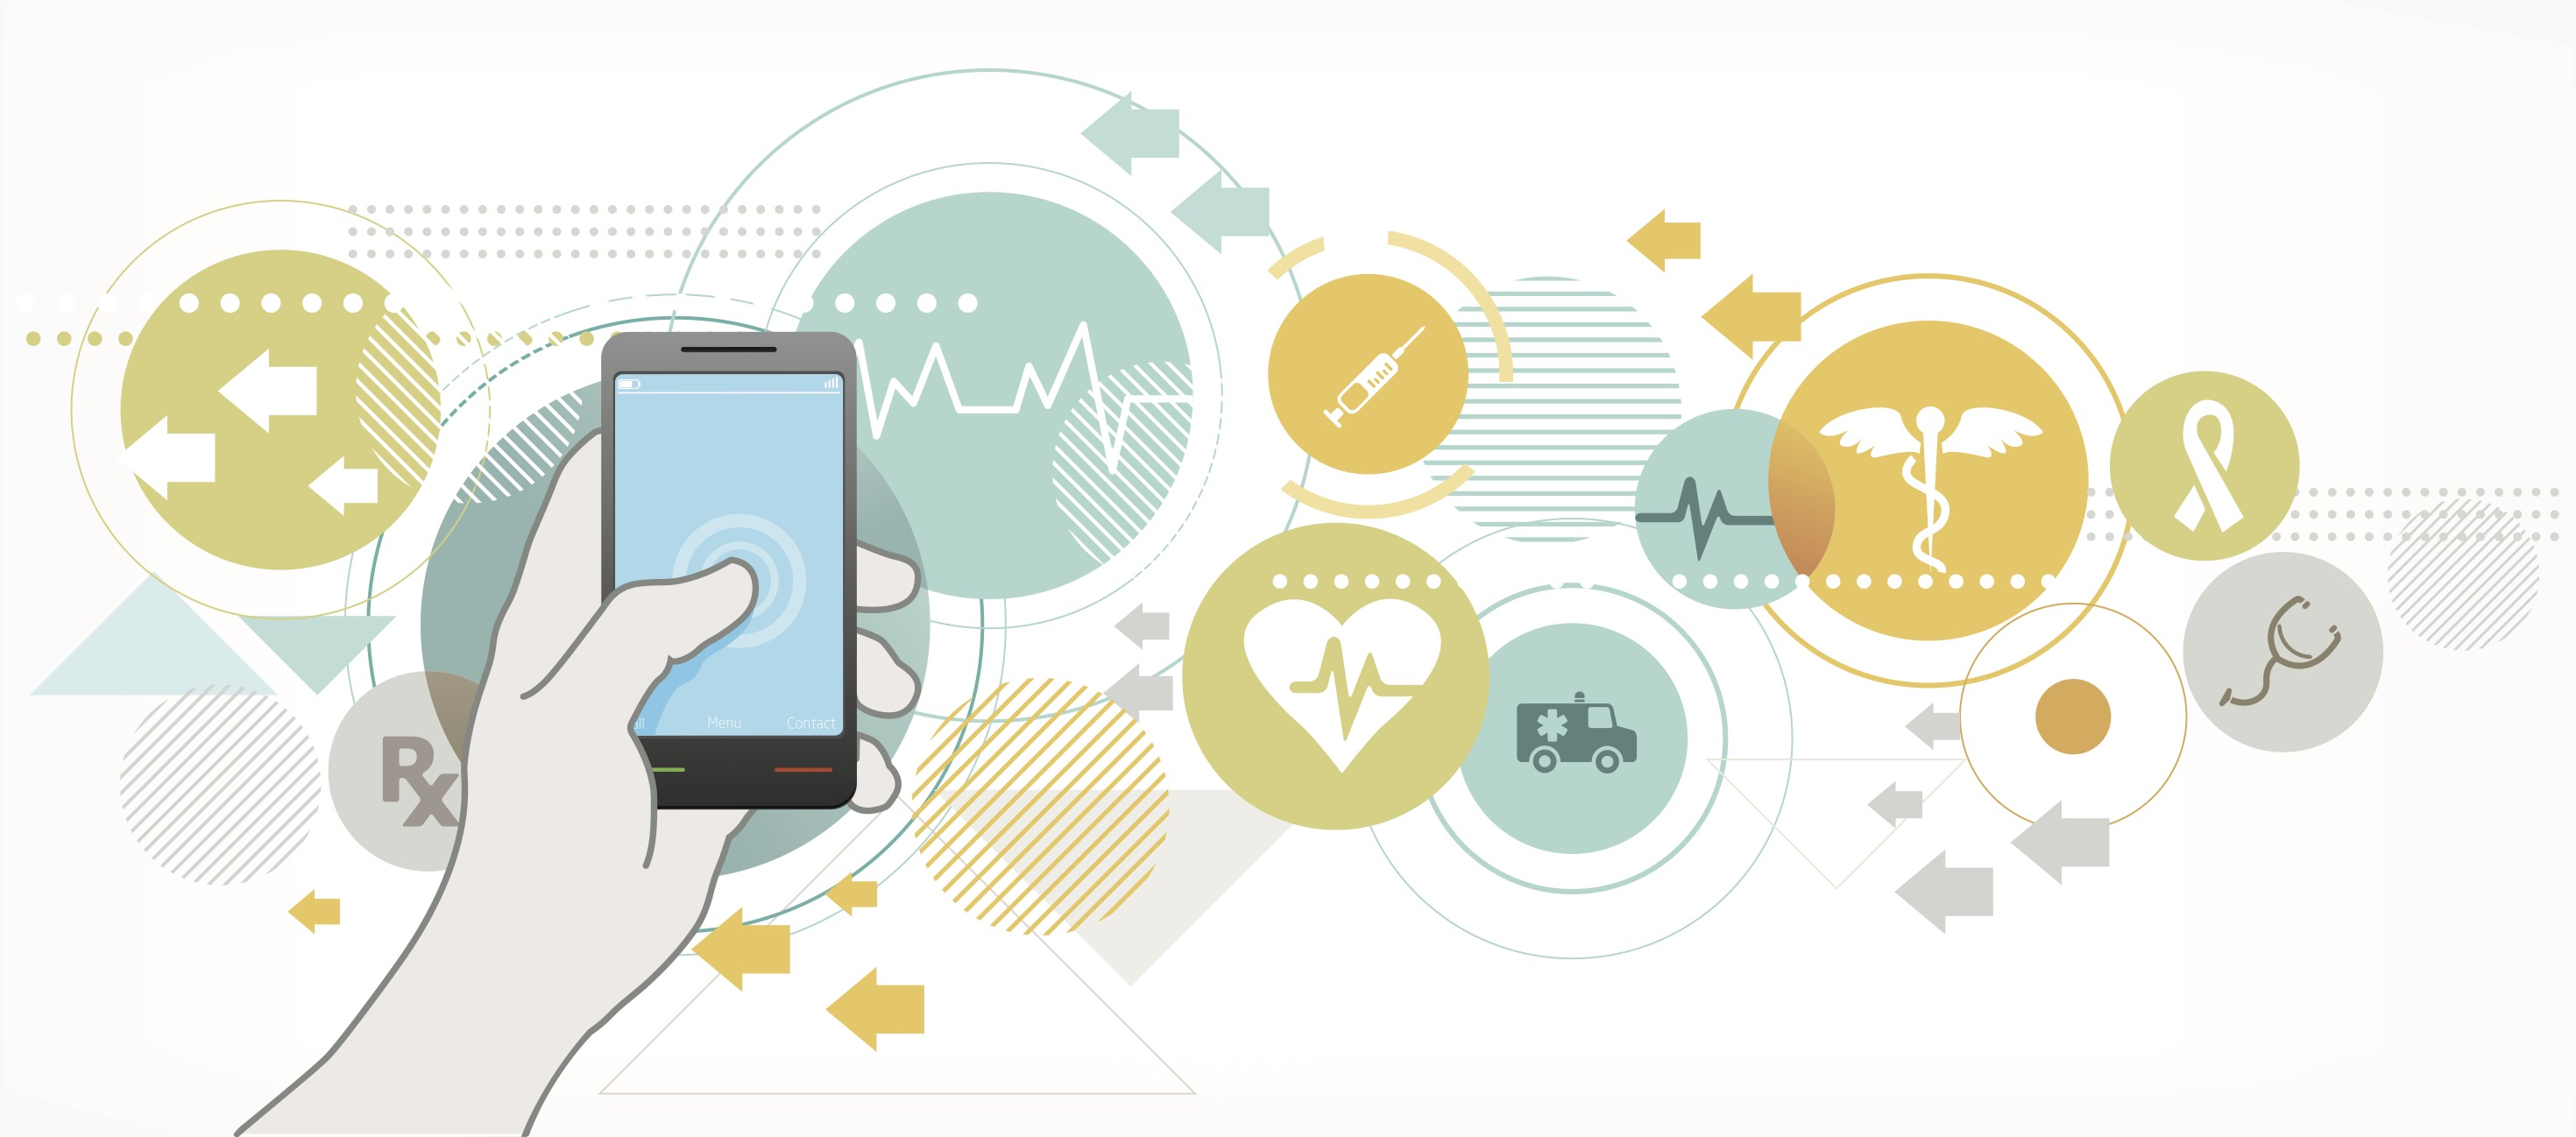 Designing Conversational Healthcare Experiences with Third-Party Integrations